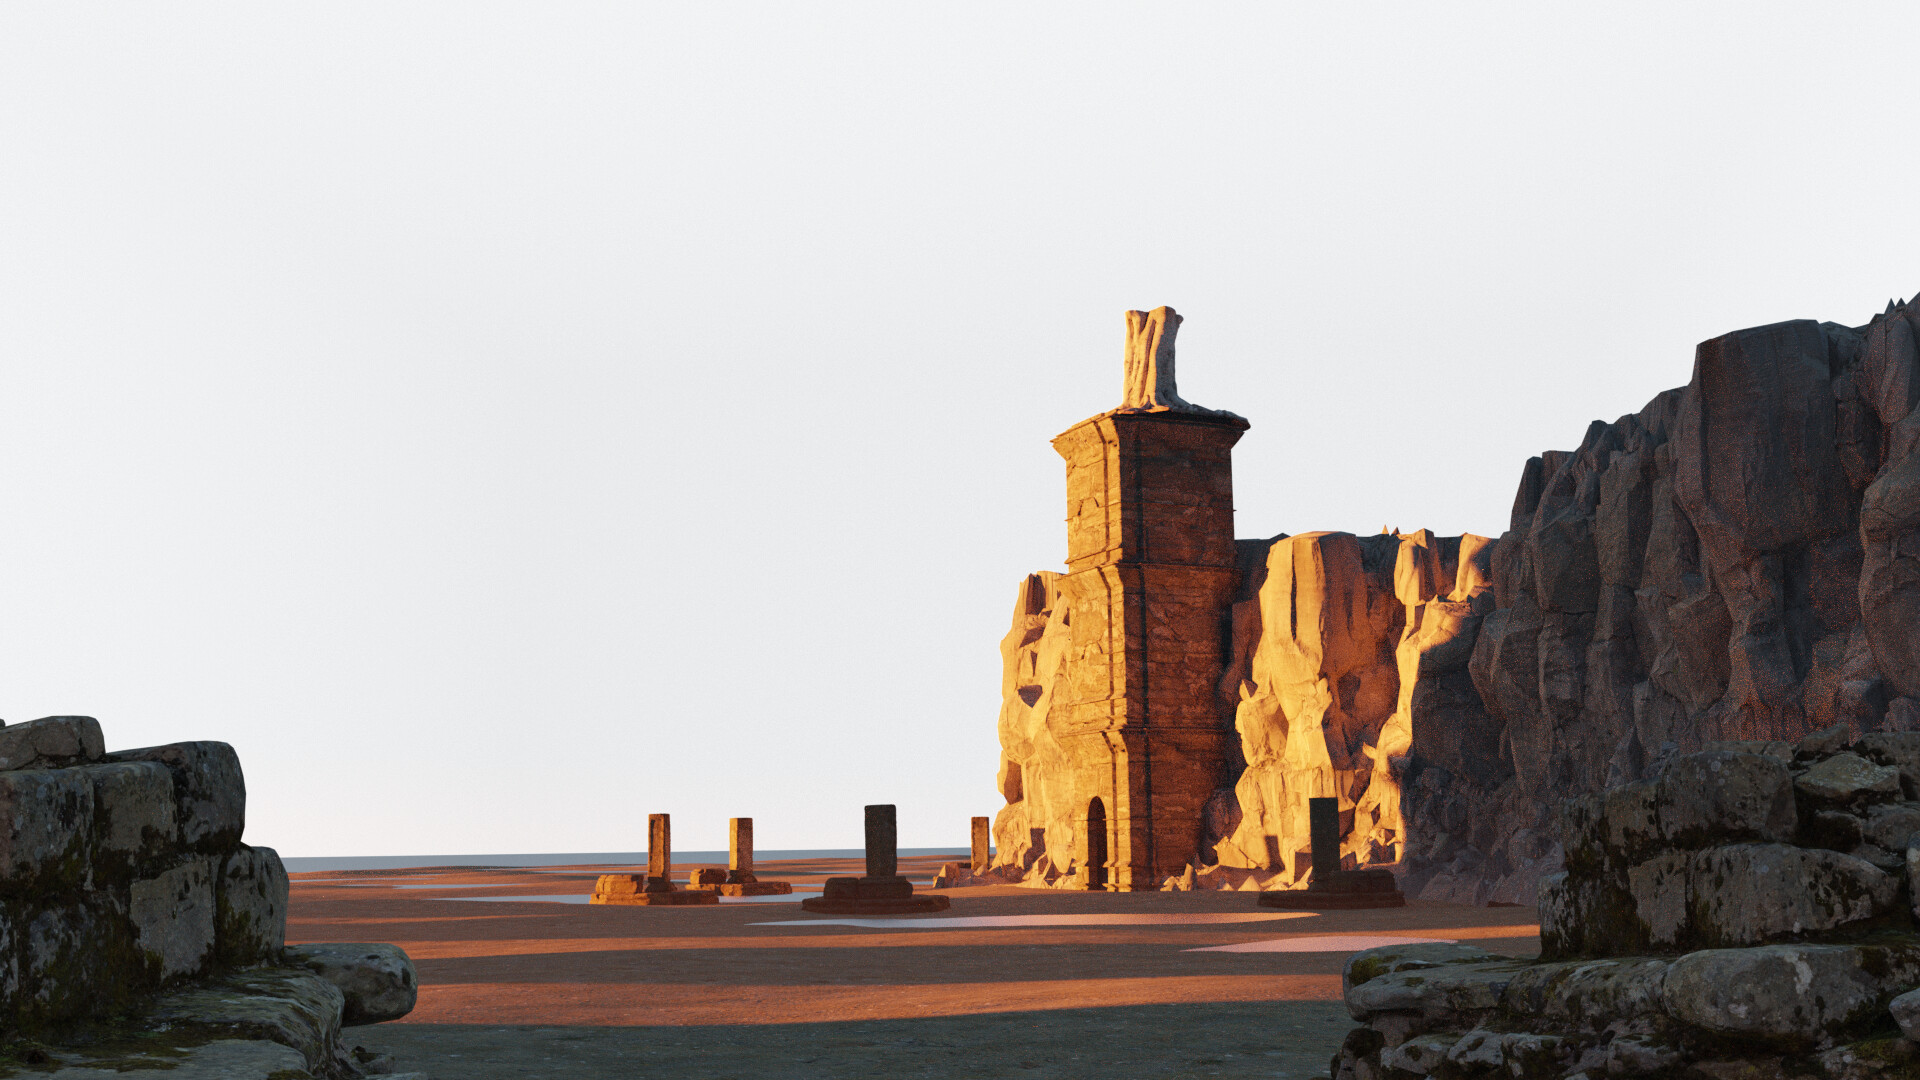 decided on only one tower and used some assets from quixel to fill in the scene, going from big>small. Not more then 5 assets were used, since the rest i will be painting later or introduced too much detail.